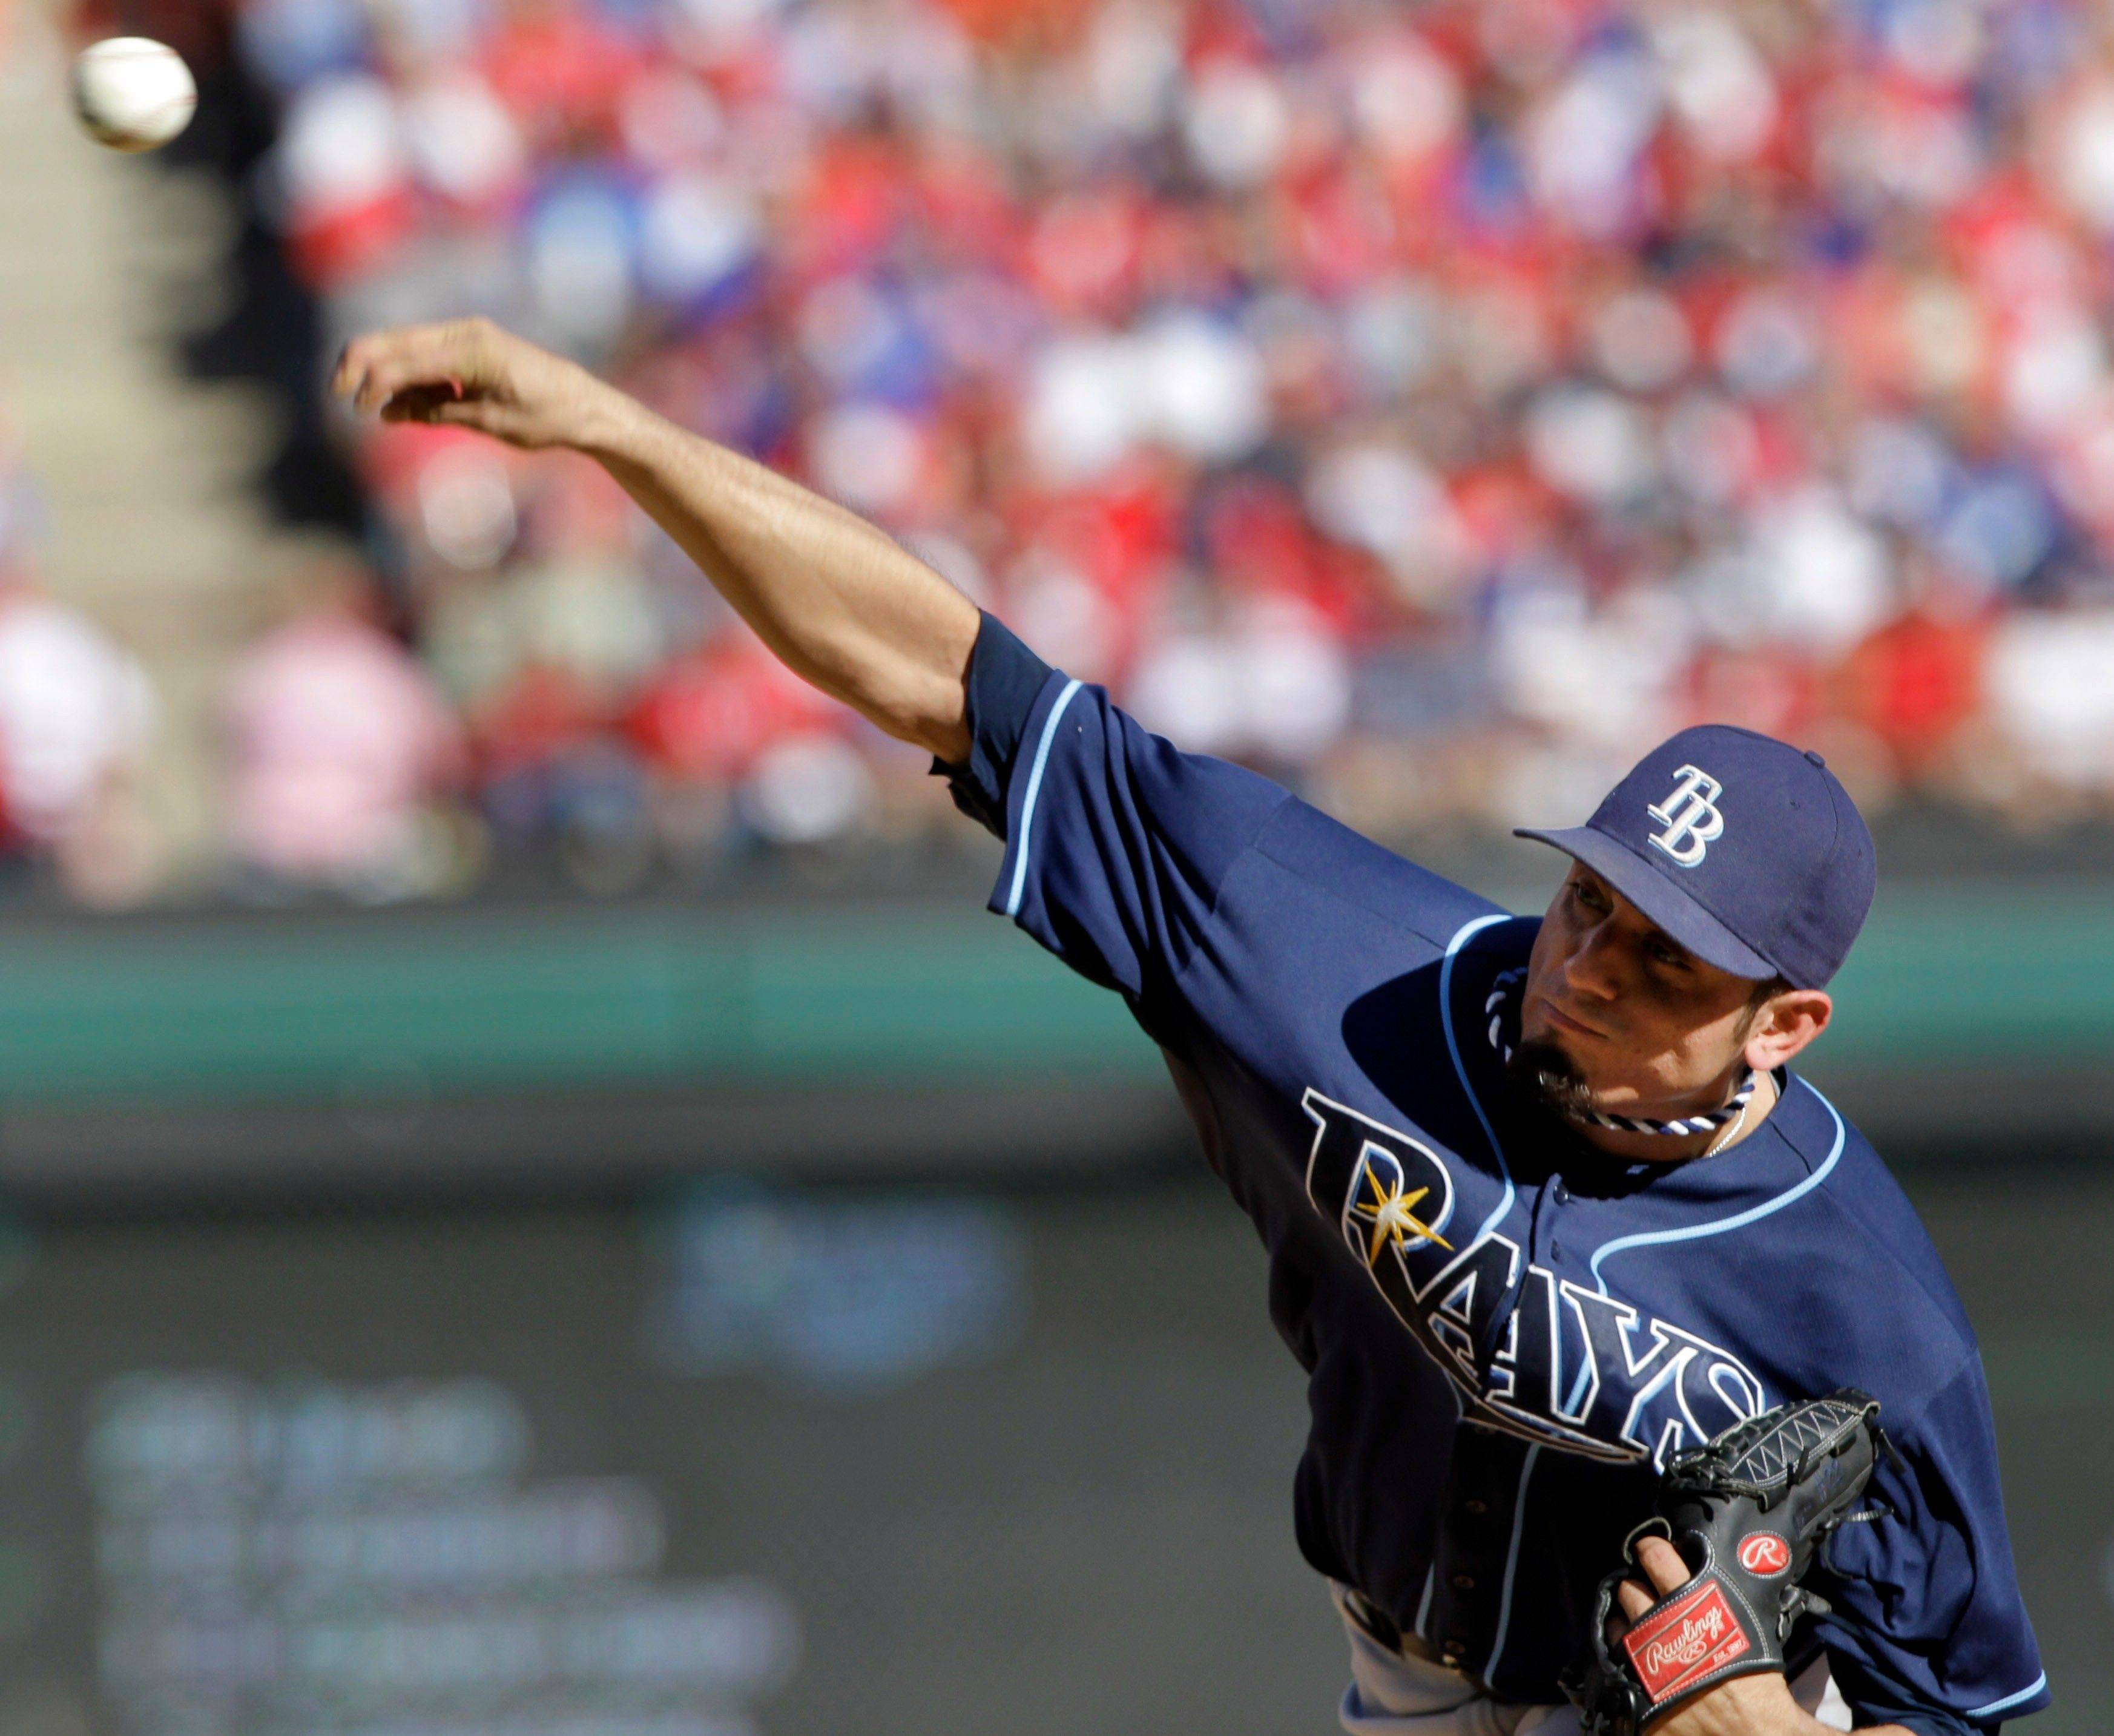 Tampa Bay Rays starting pitcher Matt Garza is headed to the Chicago Cubs, according to sources.